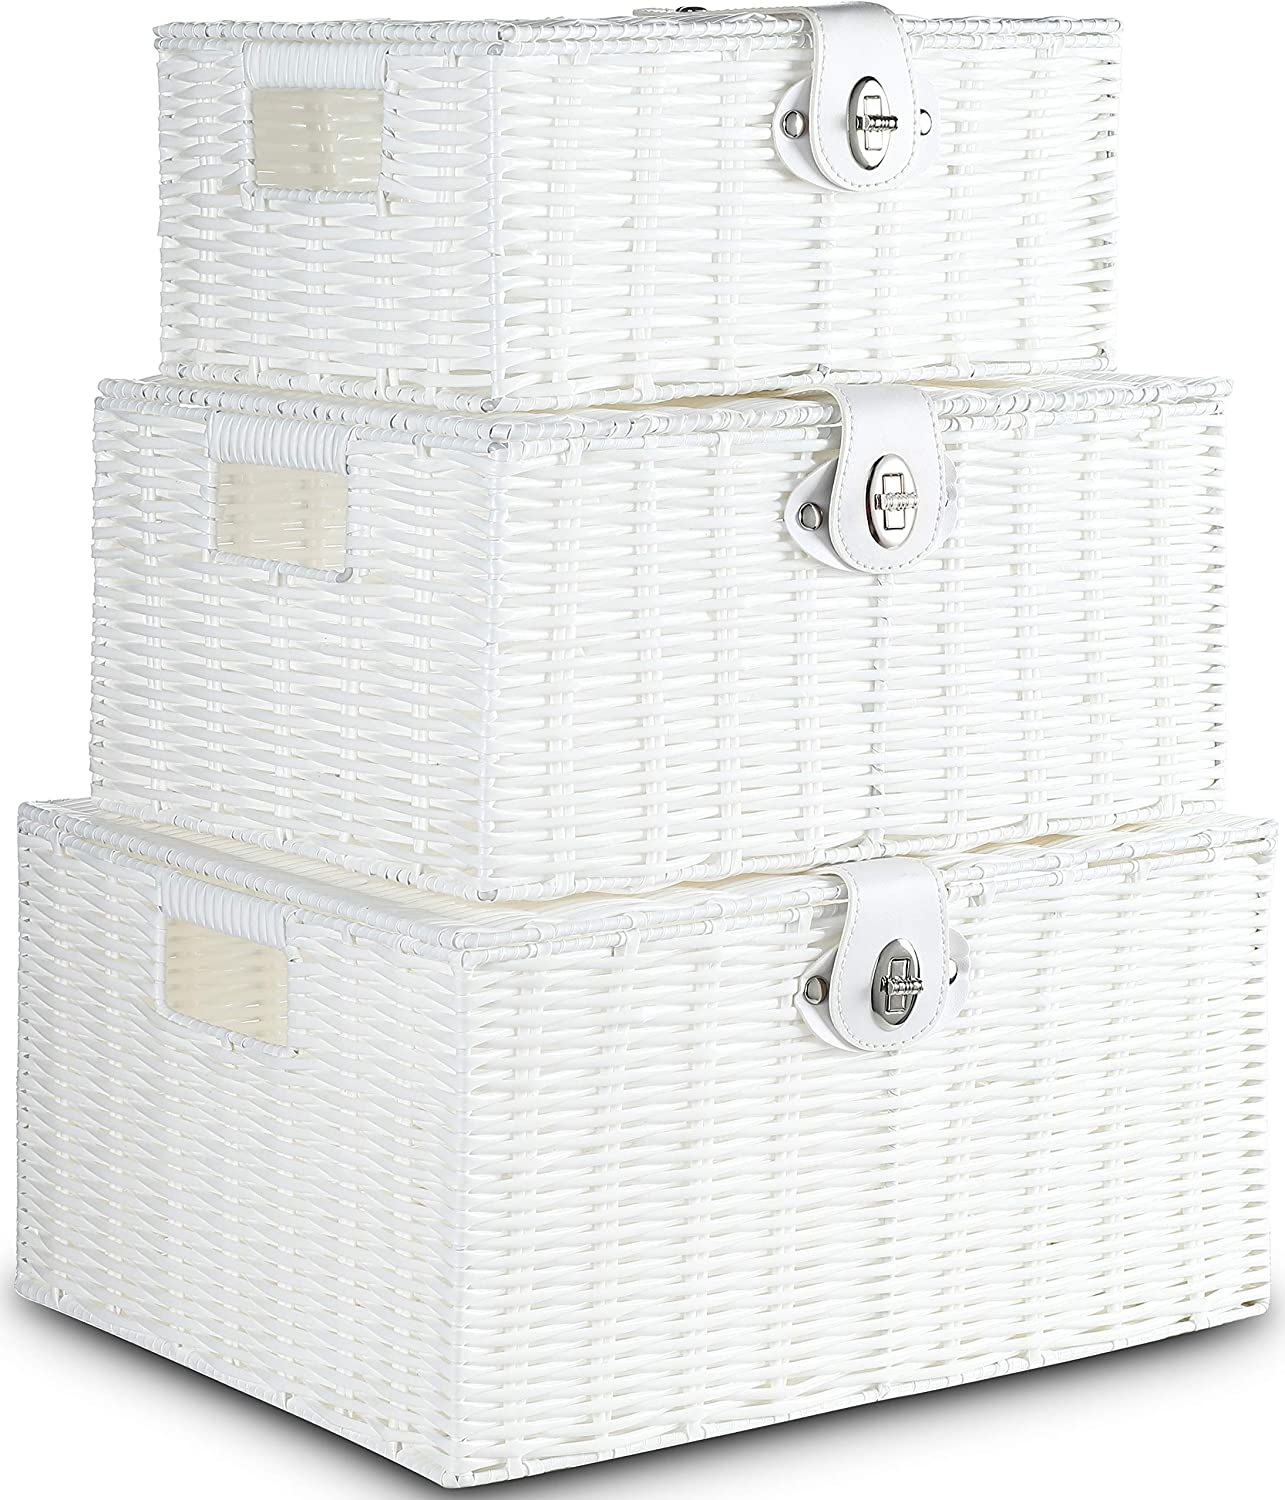 Honygebia White Woven Storage Baskets - Decorative Nesting Boxes with Lids and Locks, Easy Clean (Set of 3)